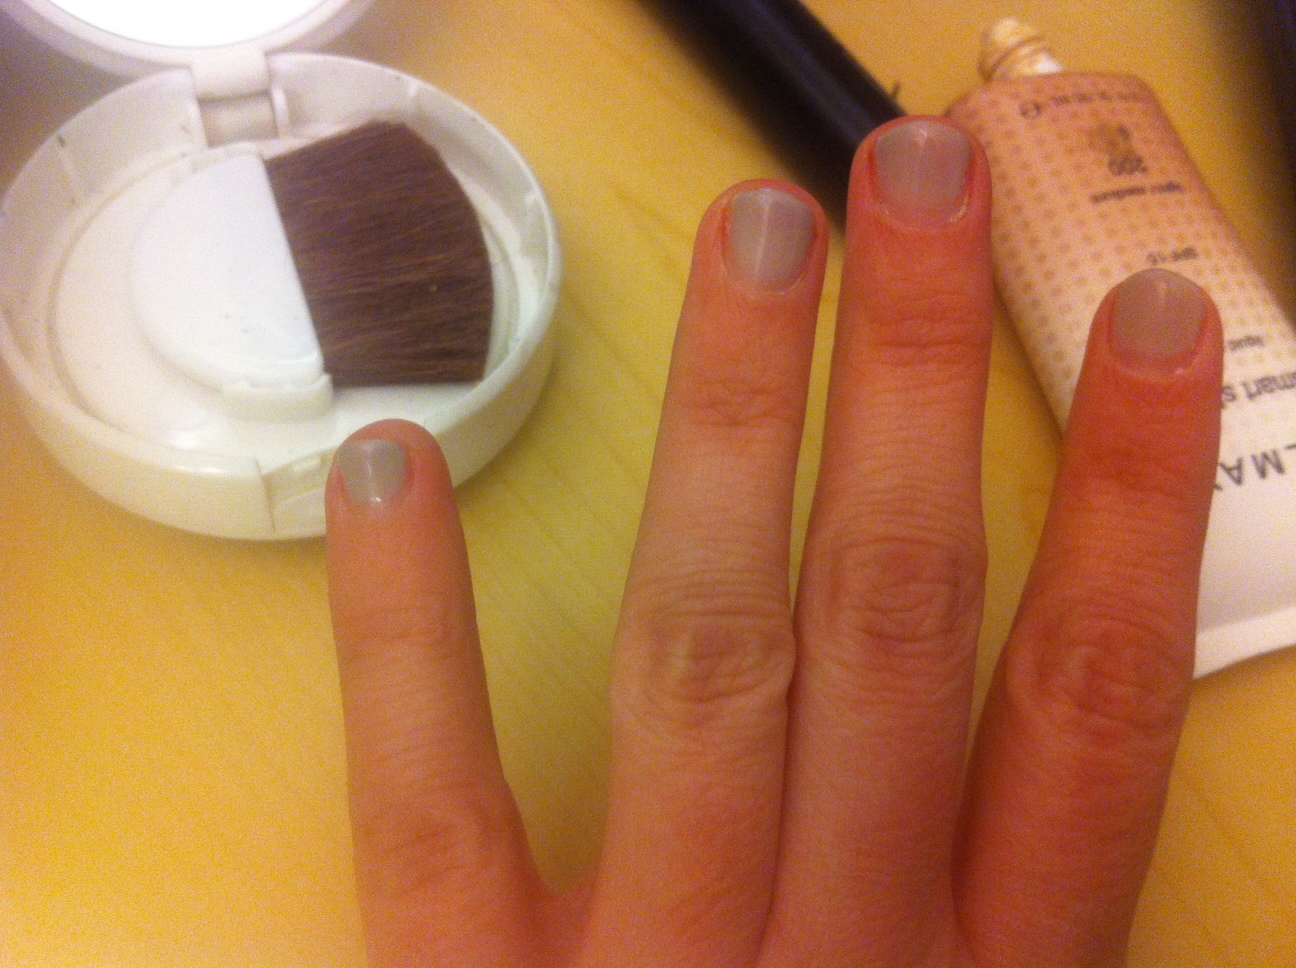 Sparkwood & 21: How to Not Stop Biting Your Fingernails